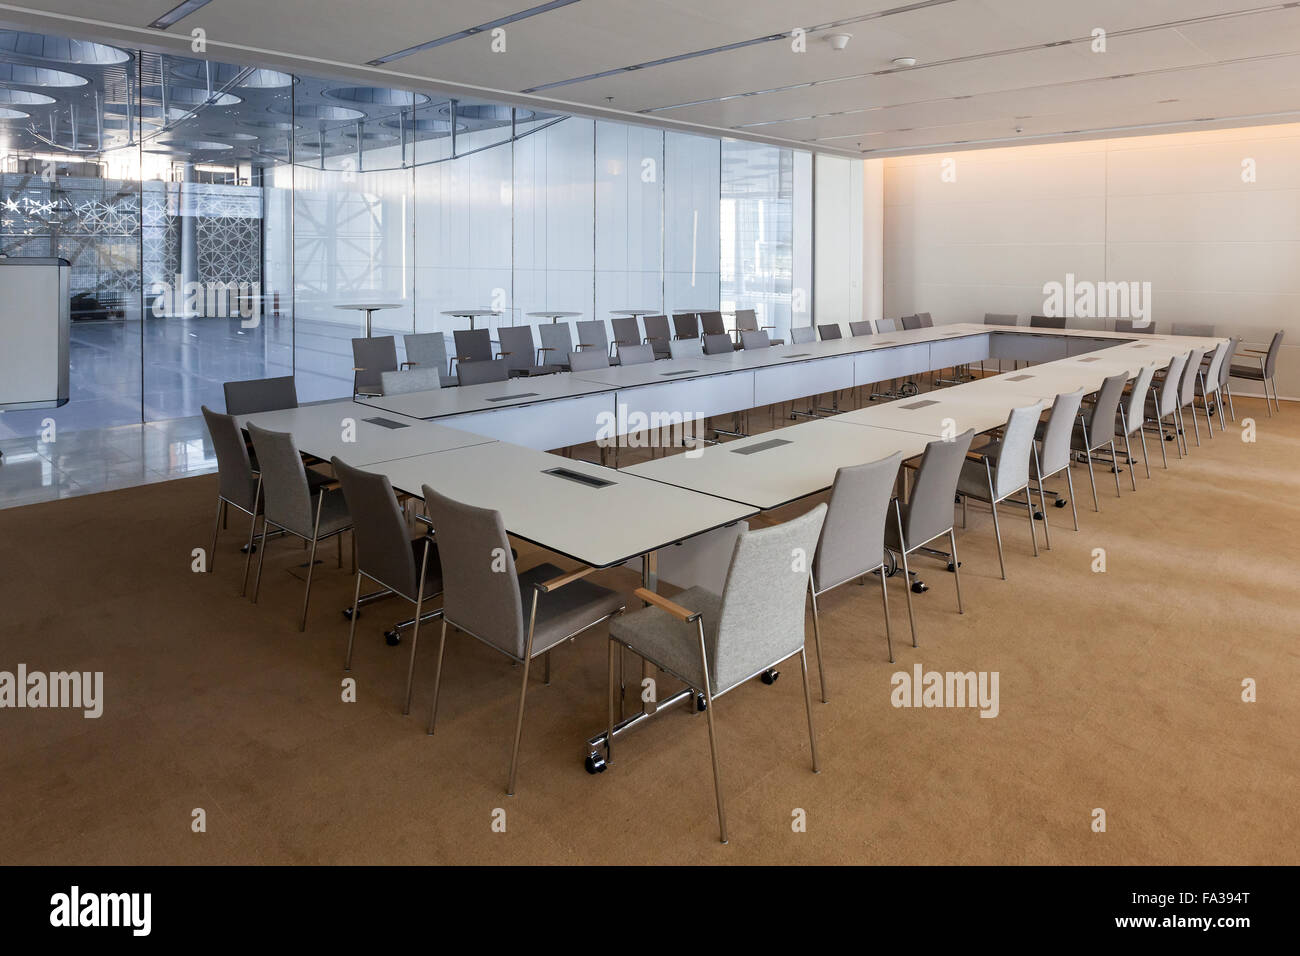 Business meeting room - Stock Image